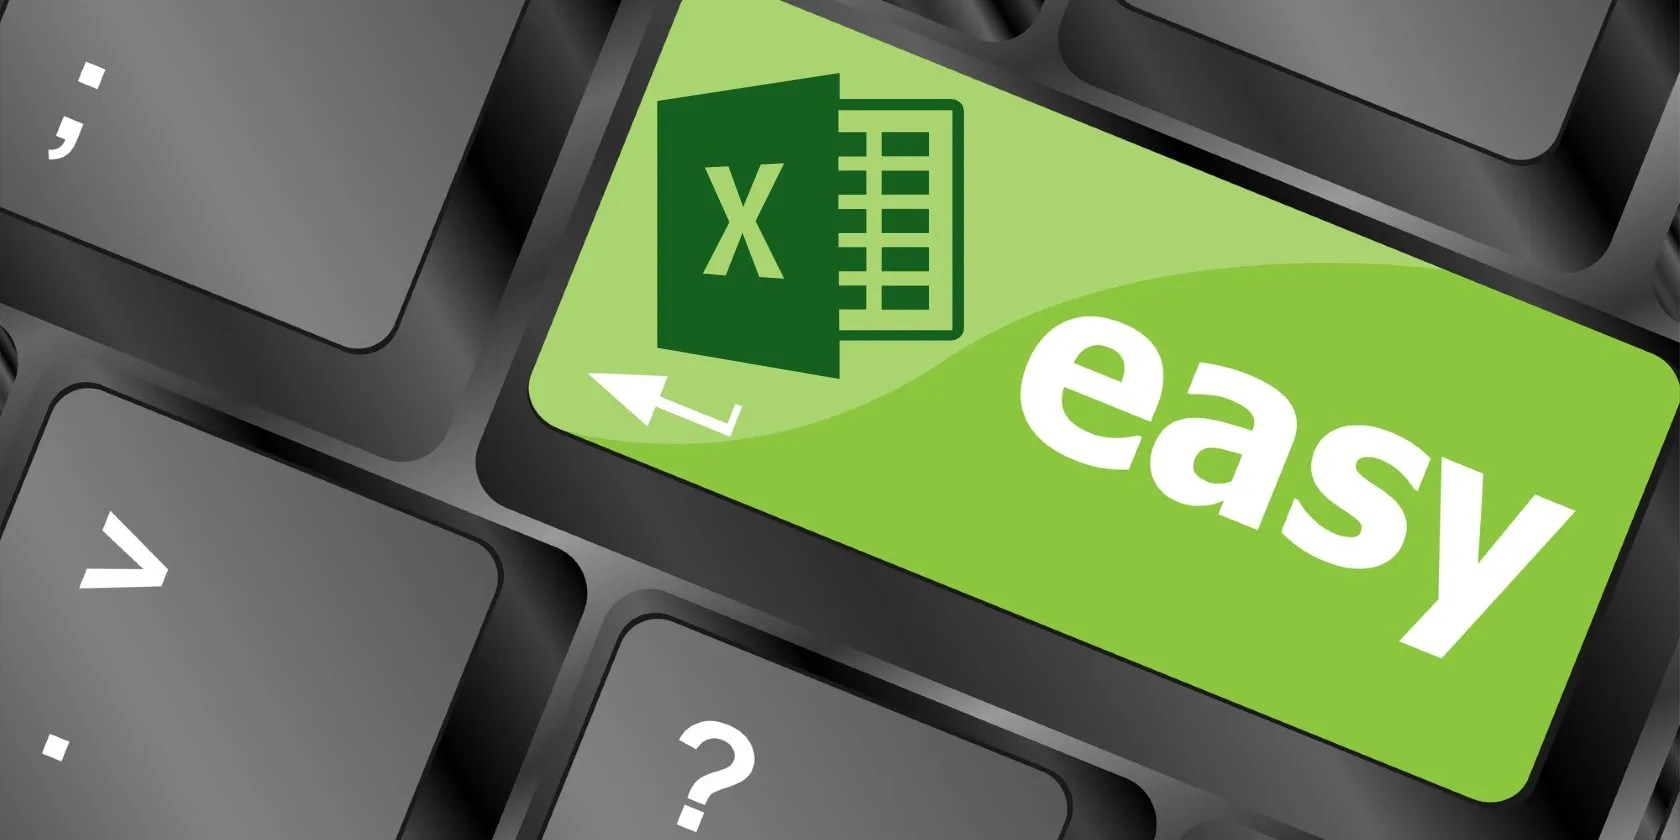 10 Essential Excel Keyboard Shortcuts For Navigating